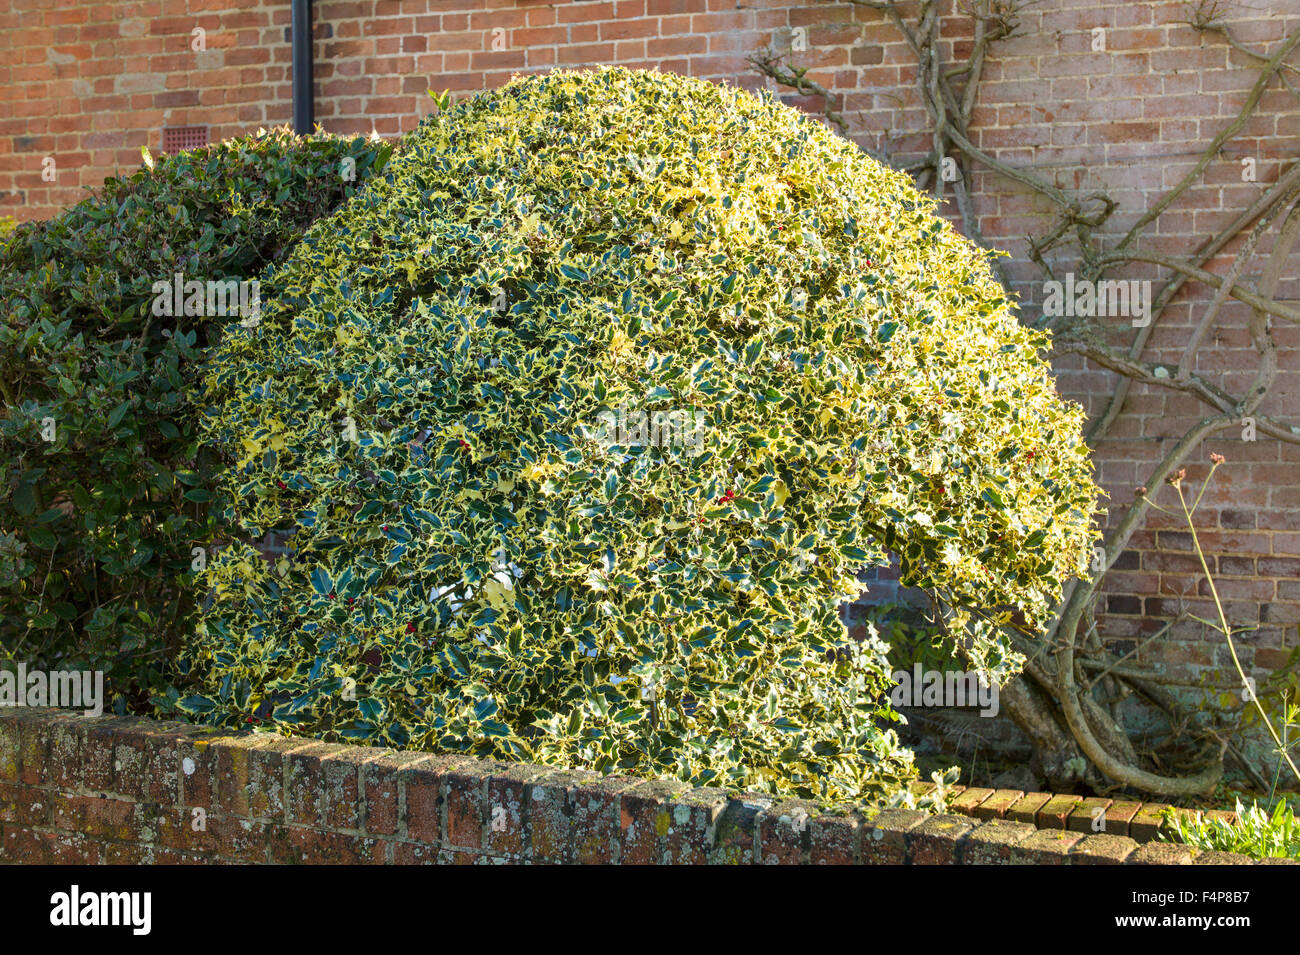 Rounded variegated holly bush in narrow front garden - Stock Image